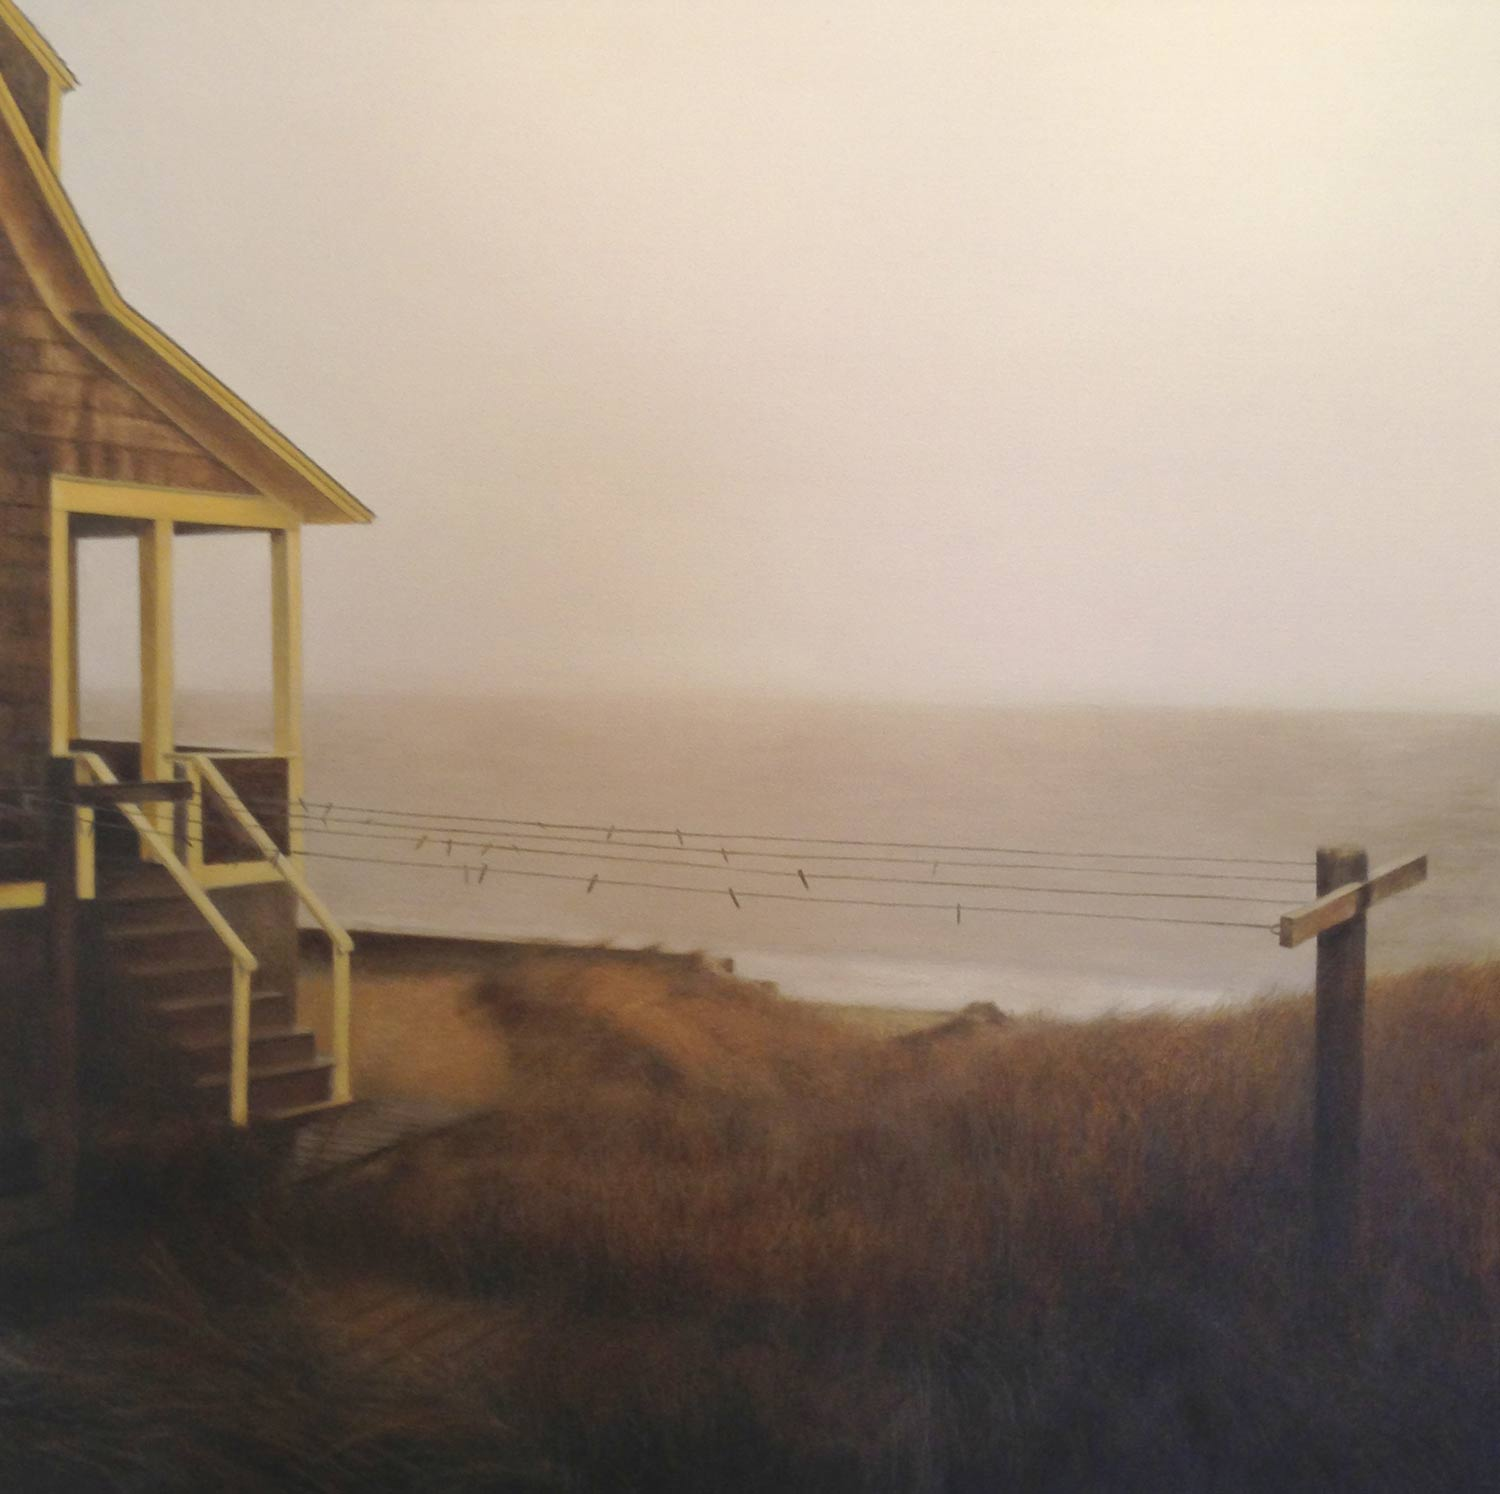 The Clothes Line, 2013 Provincetown, MA Oil on canvas 30 x 30 inches